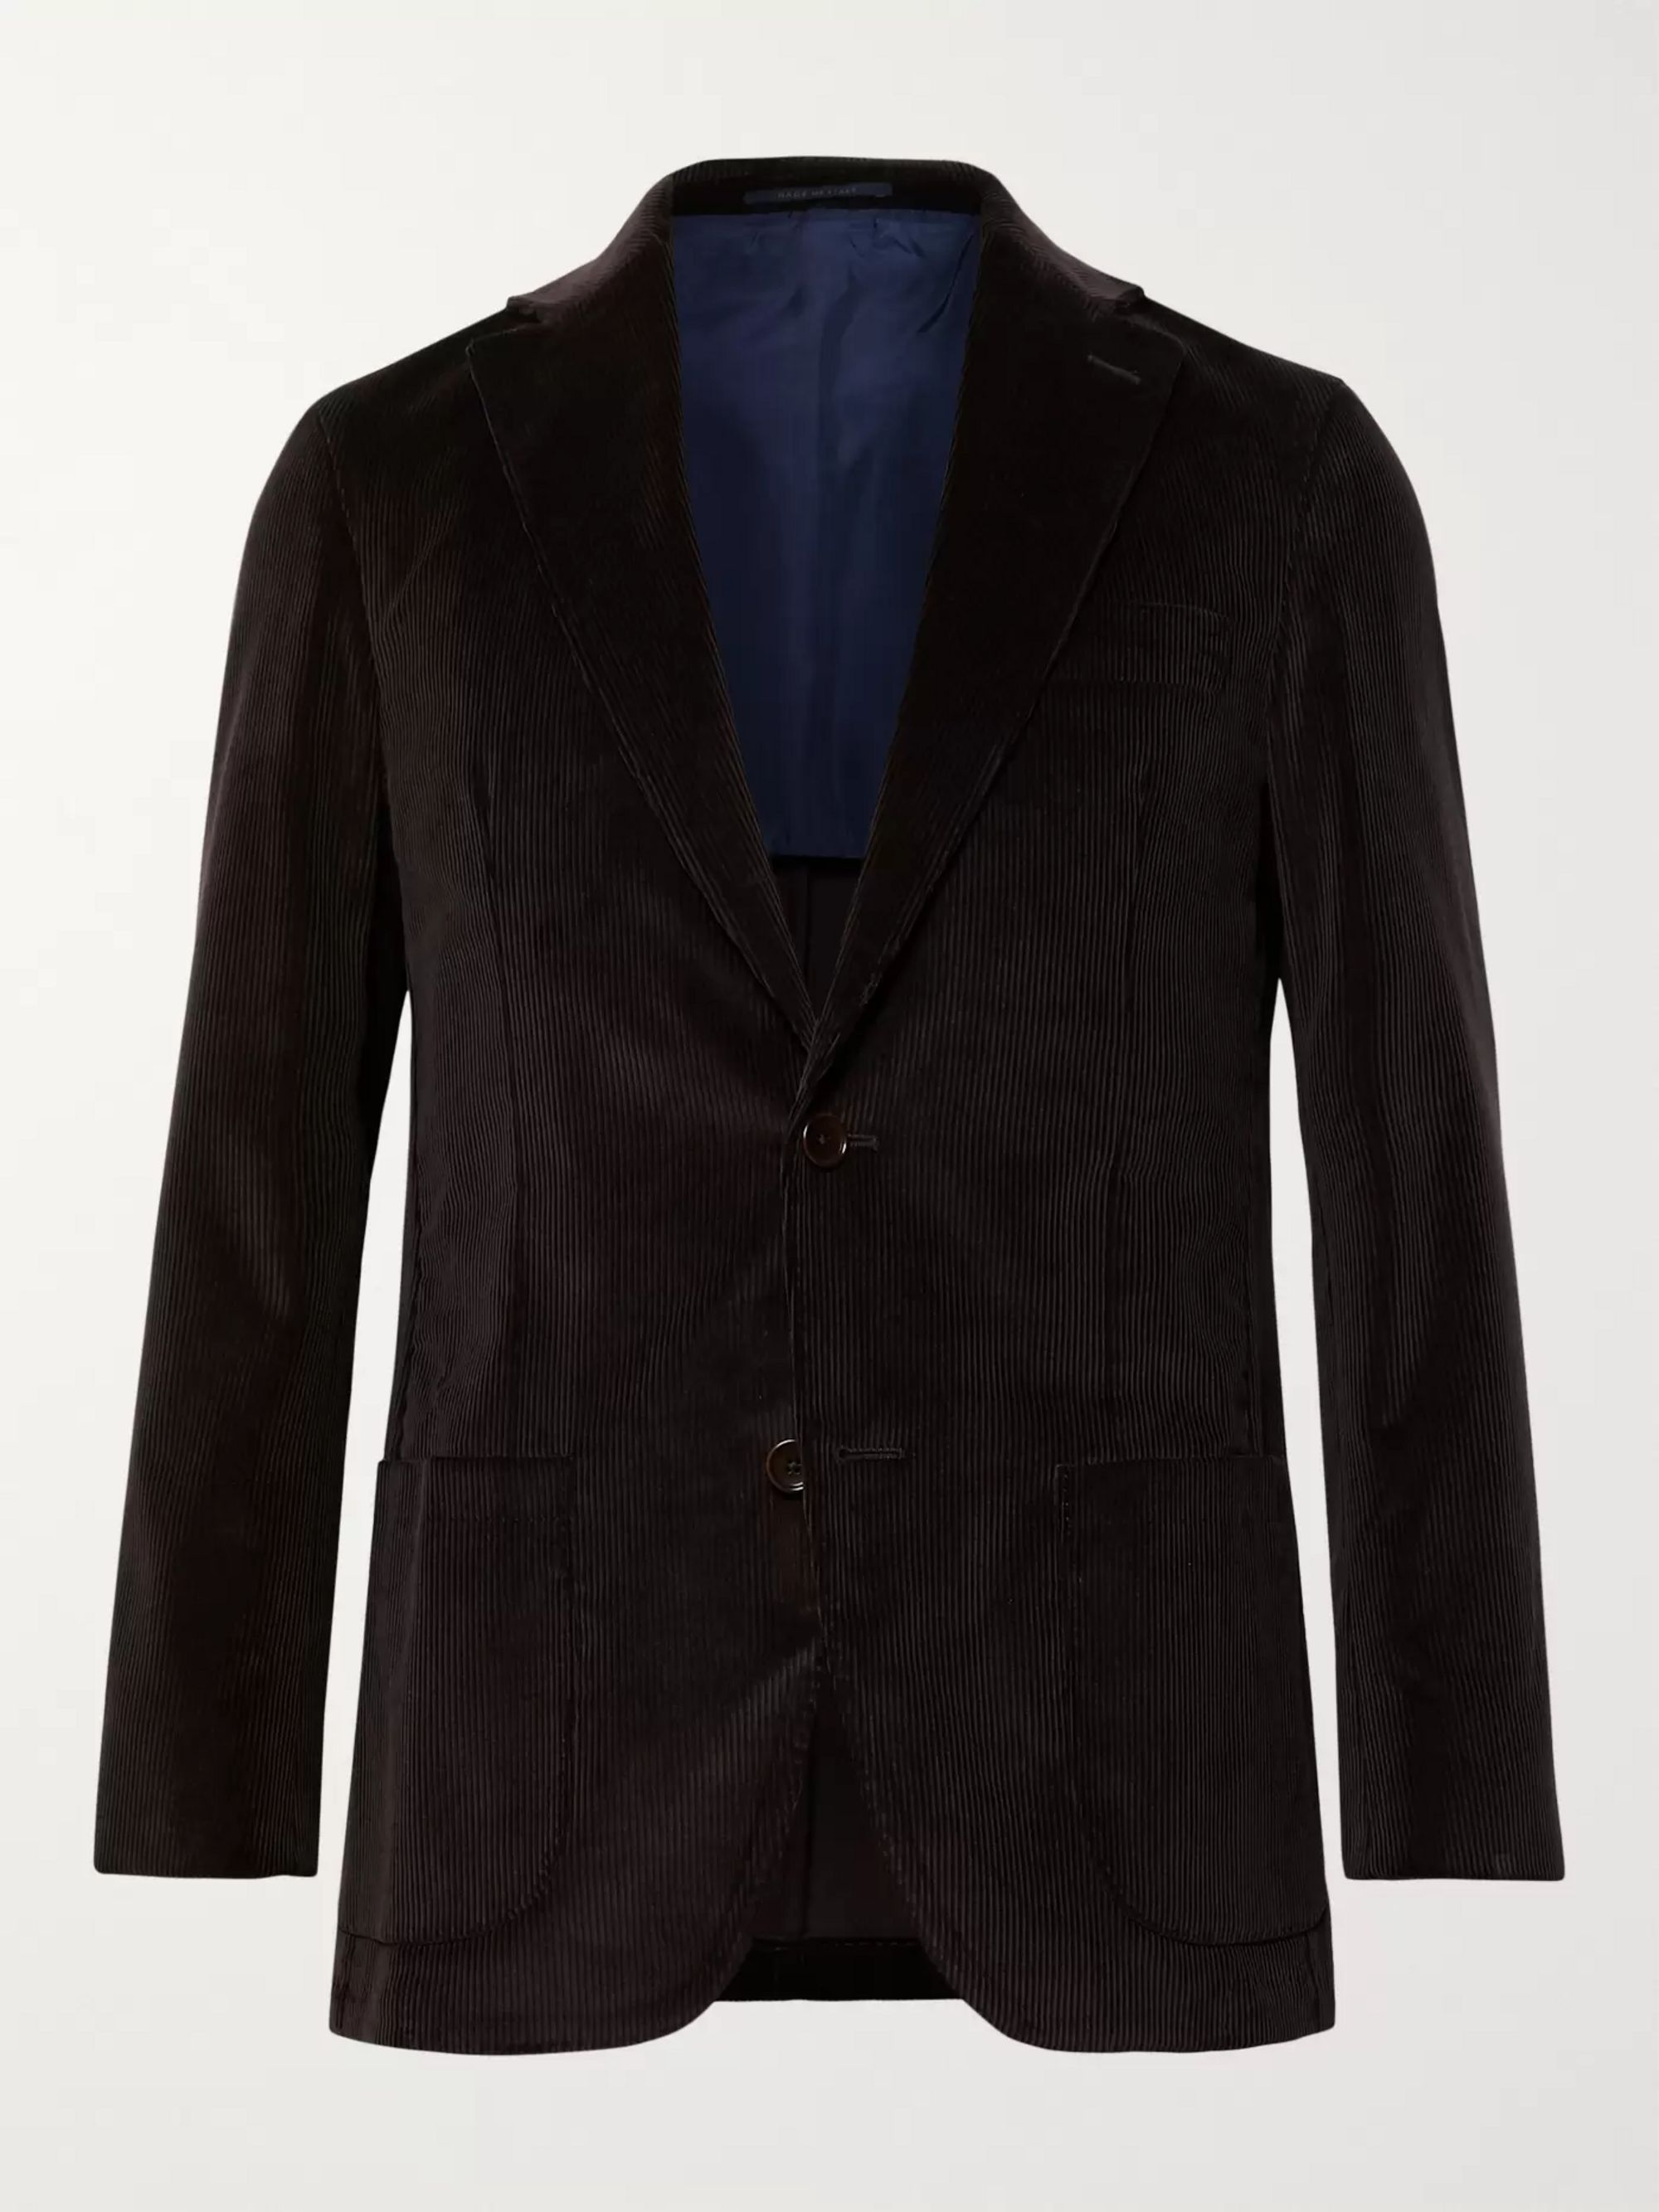 Sid Mashburn Chocolate Kincaid No 1 Cotton-Corduroy Suit Jacket